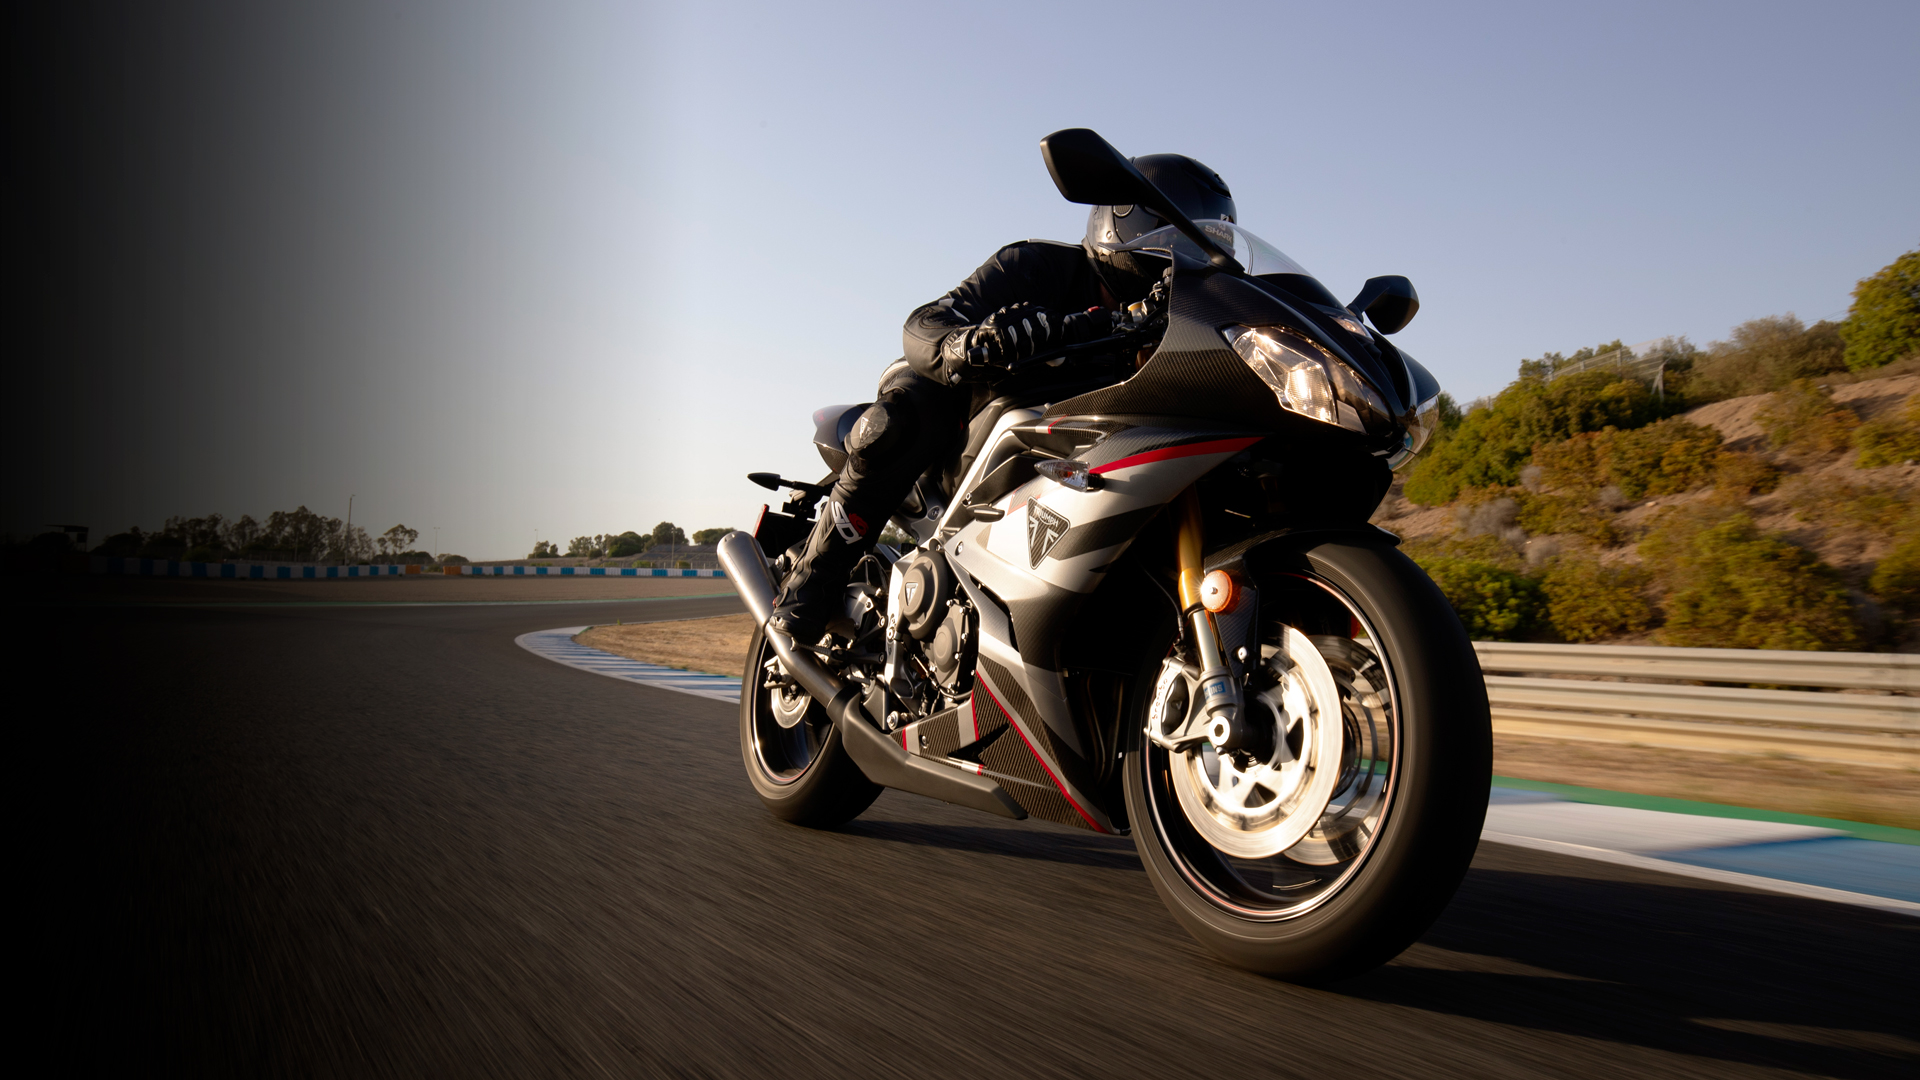 Triumph Daytona Moto2TM 765 motorcycle (USA) racing around a race track in Spain